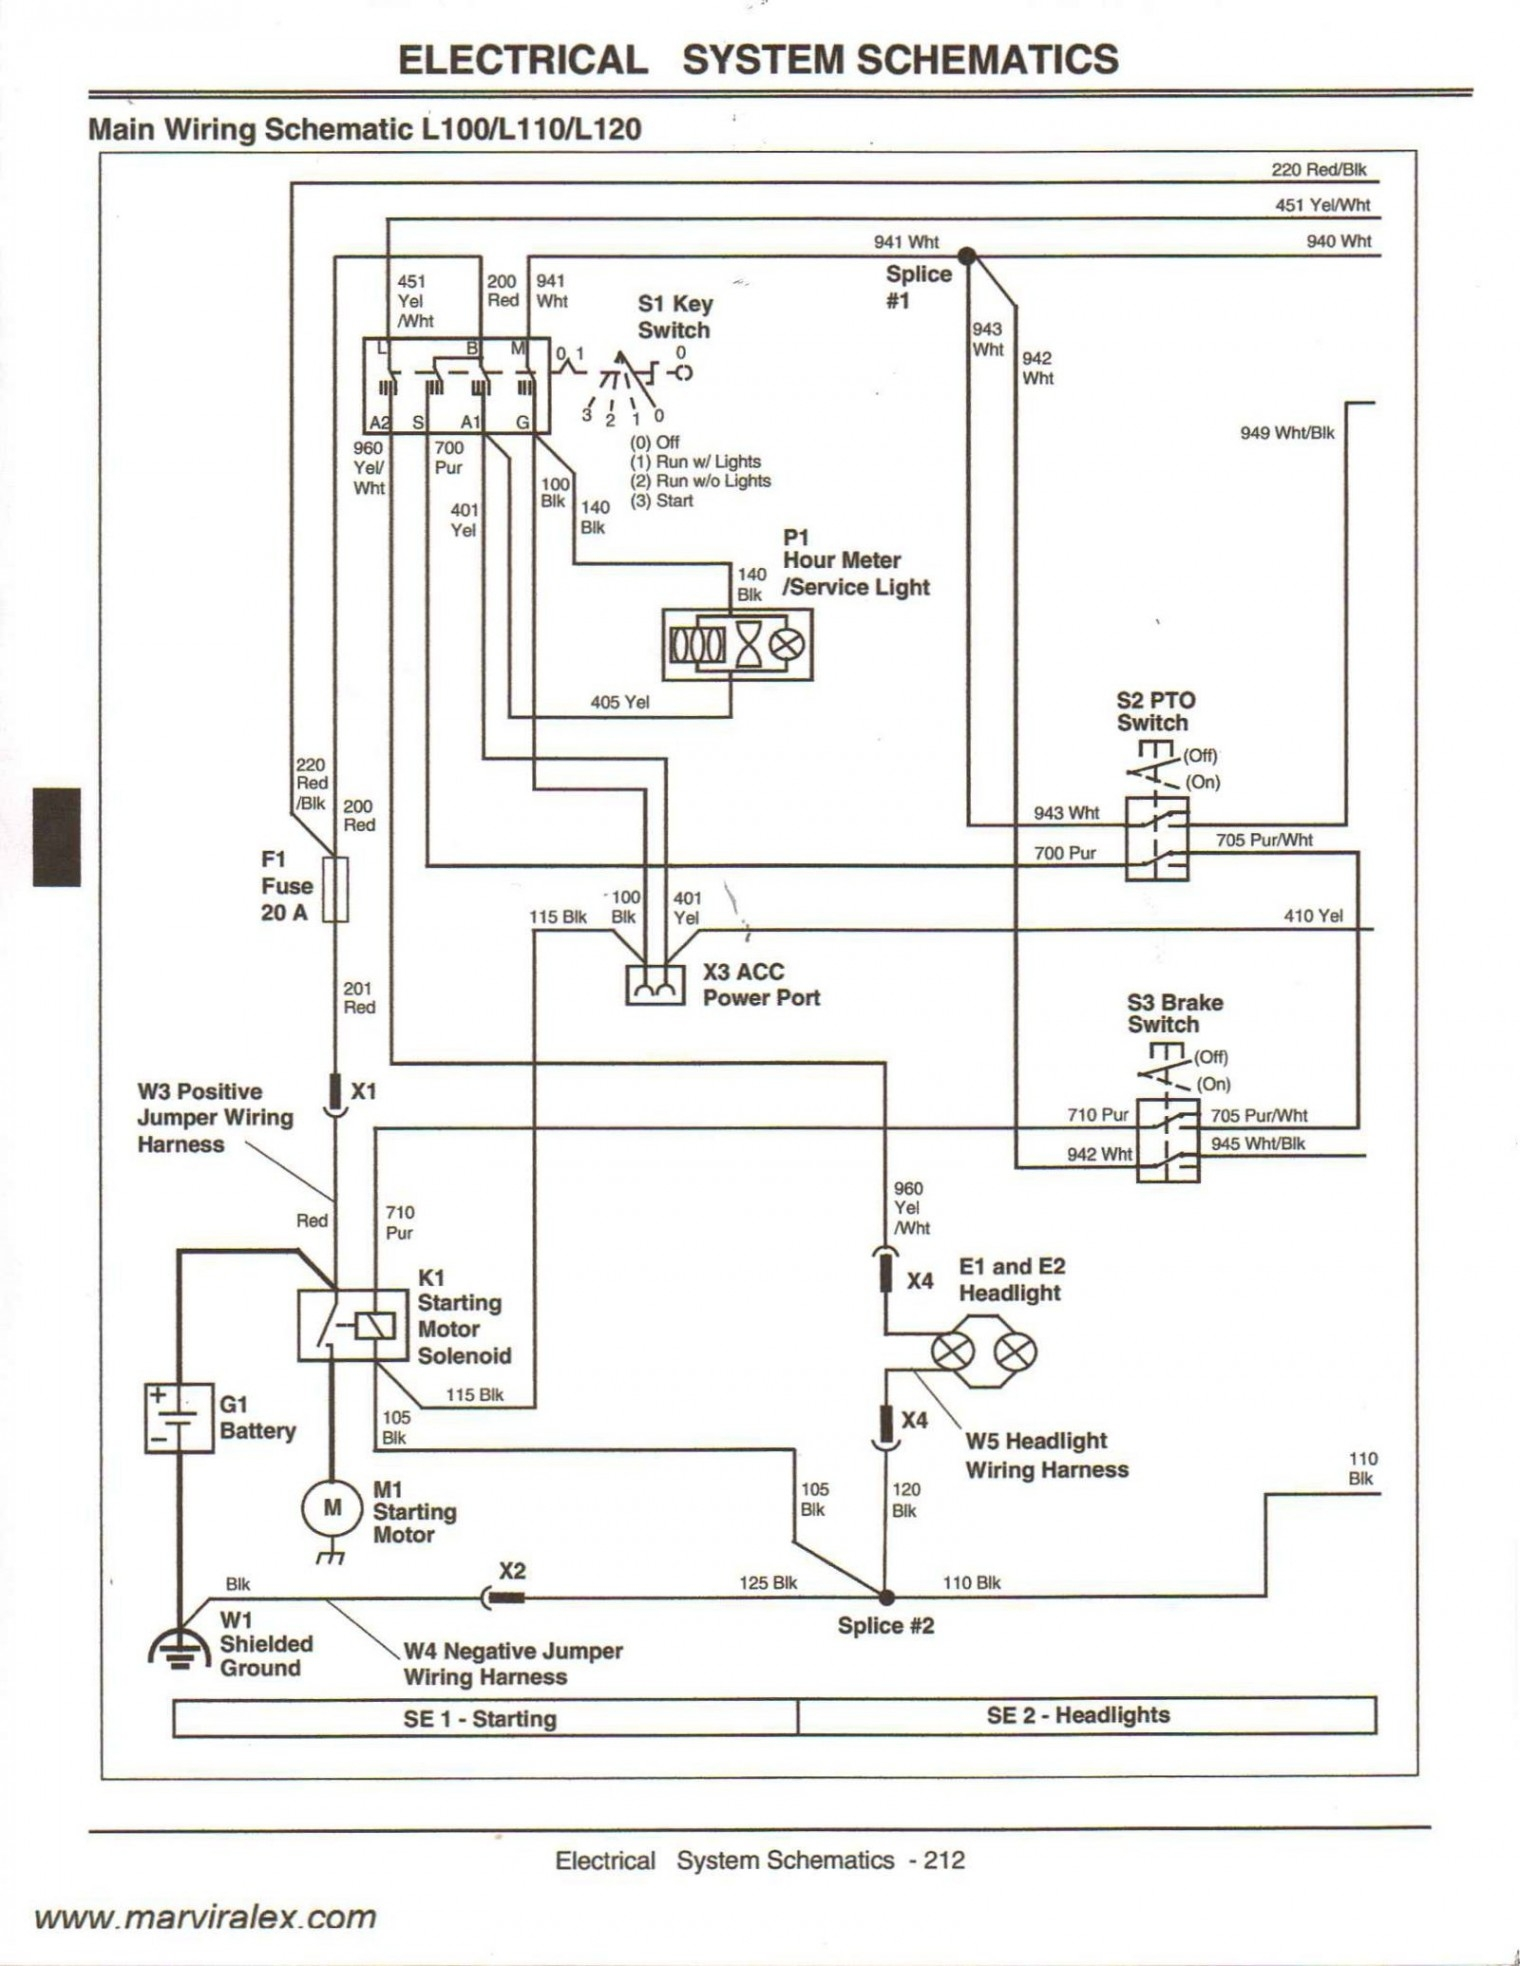 john deere l130 wiring diagram Collection-John Deere L130 Belt Diagram – John Deere L120 Clutch Wiring Diagram 318 John Deere Wiring 8-k